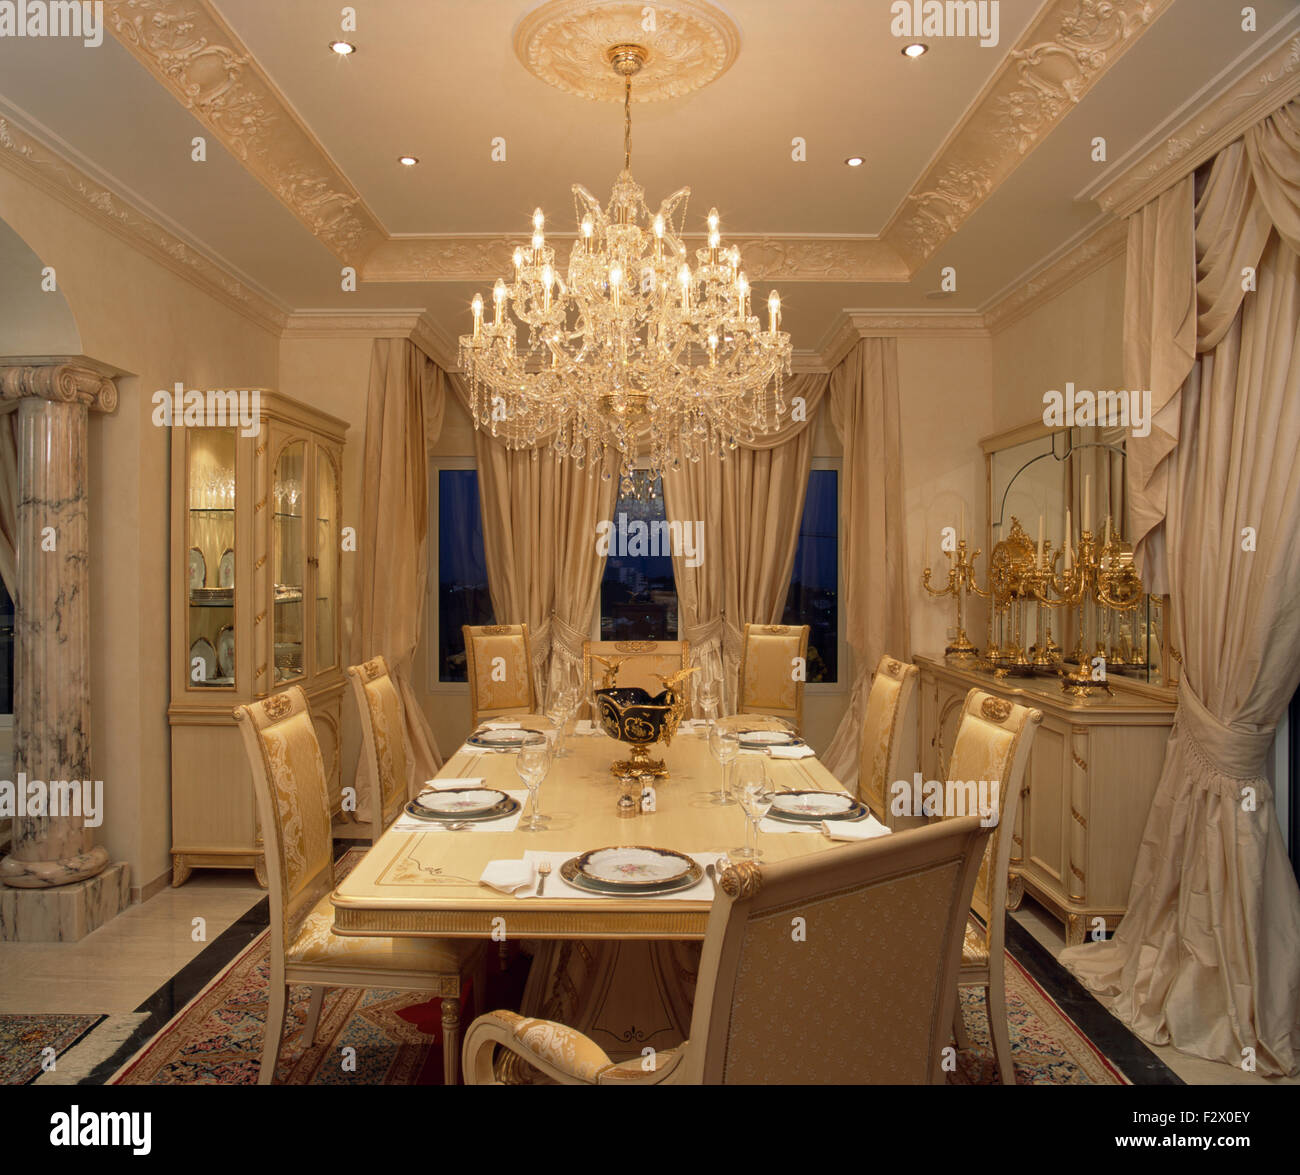 Ornate glass chandelier above table set for dinner in opulent ornate glass chandelier above table set for dinner in opulent spanish dining room with cream silk drapes arubaitofo Images